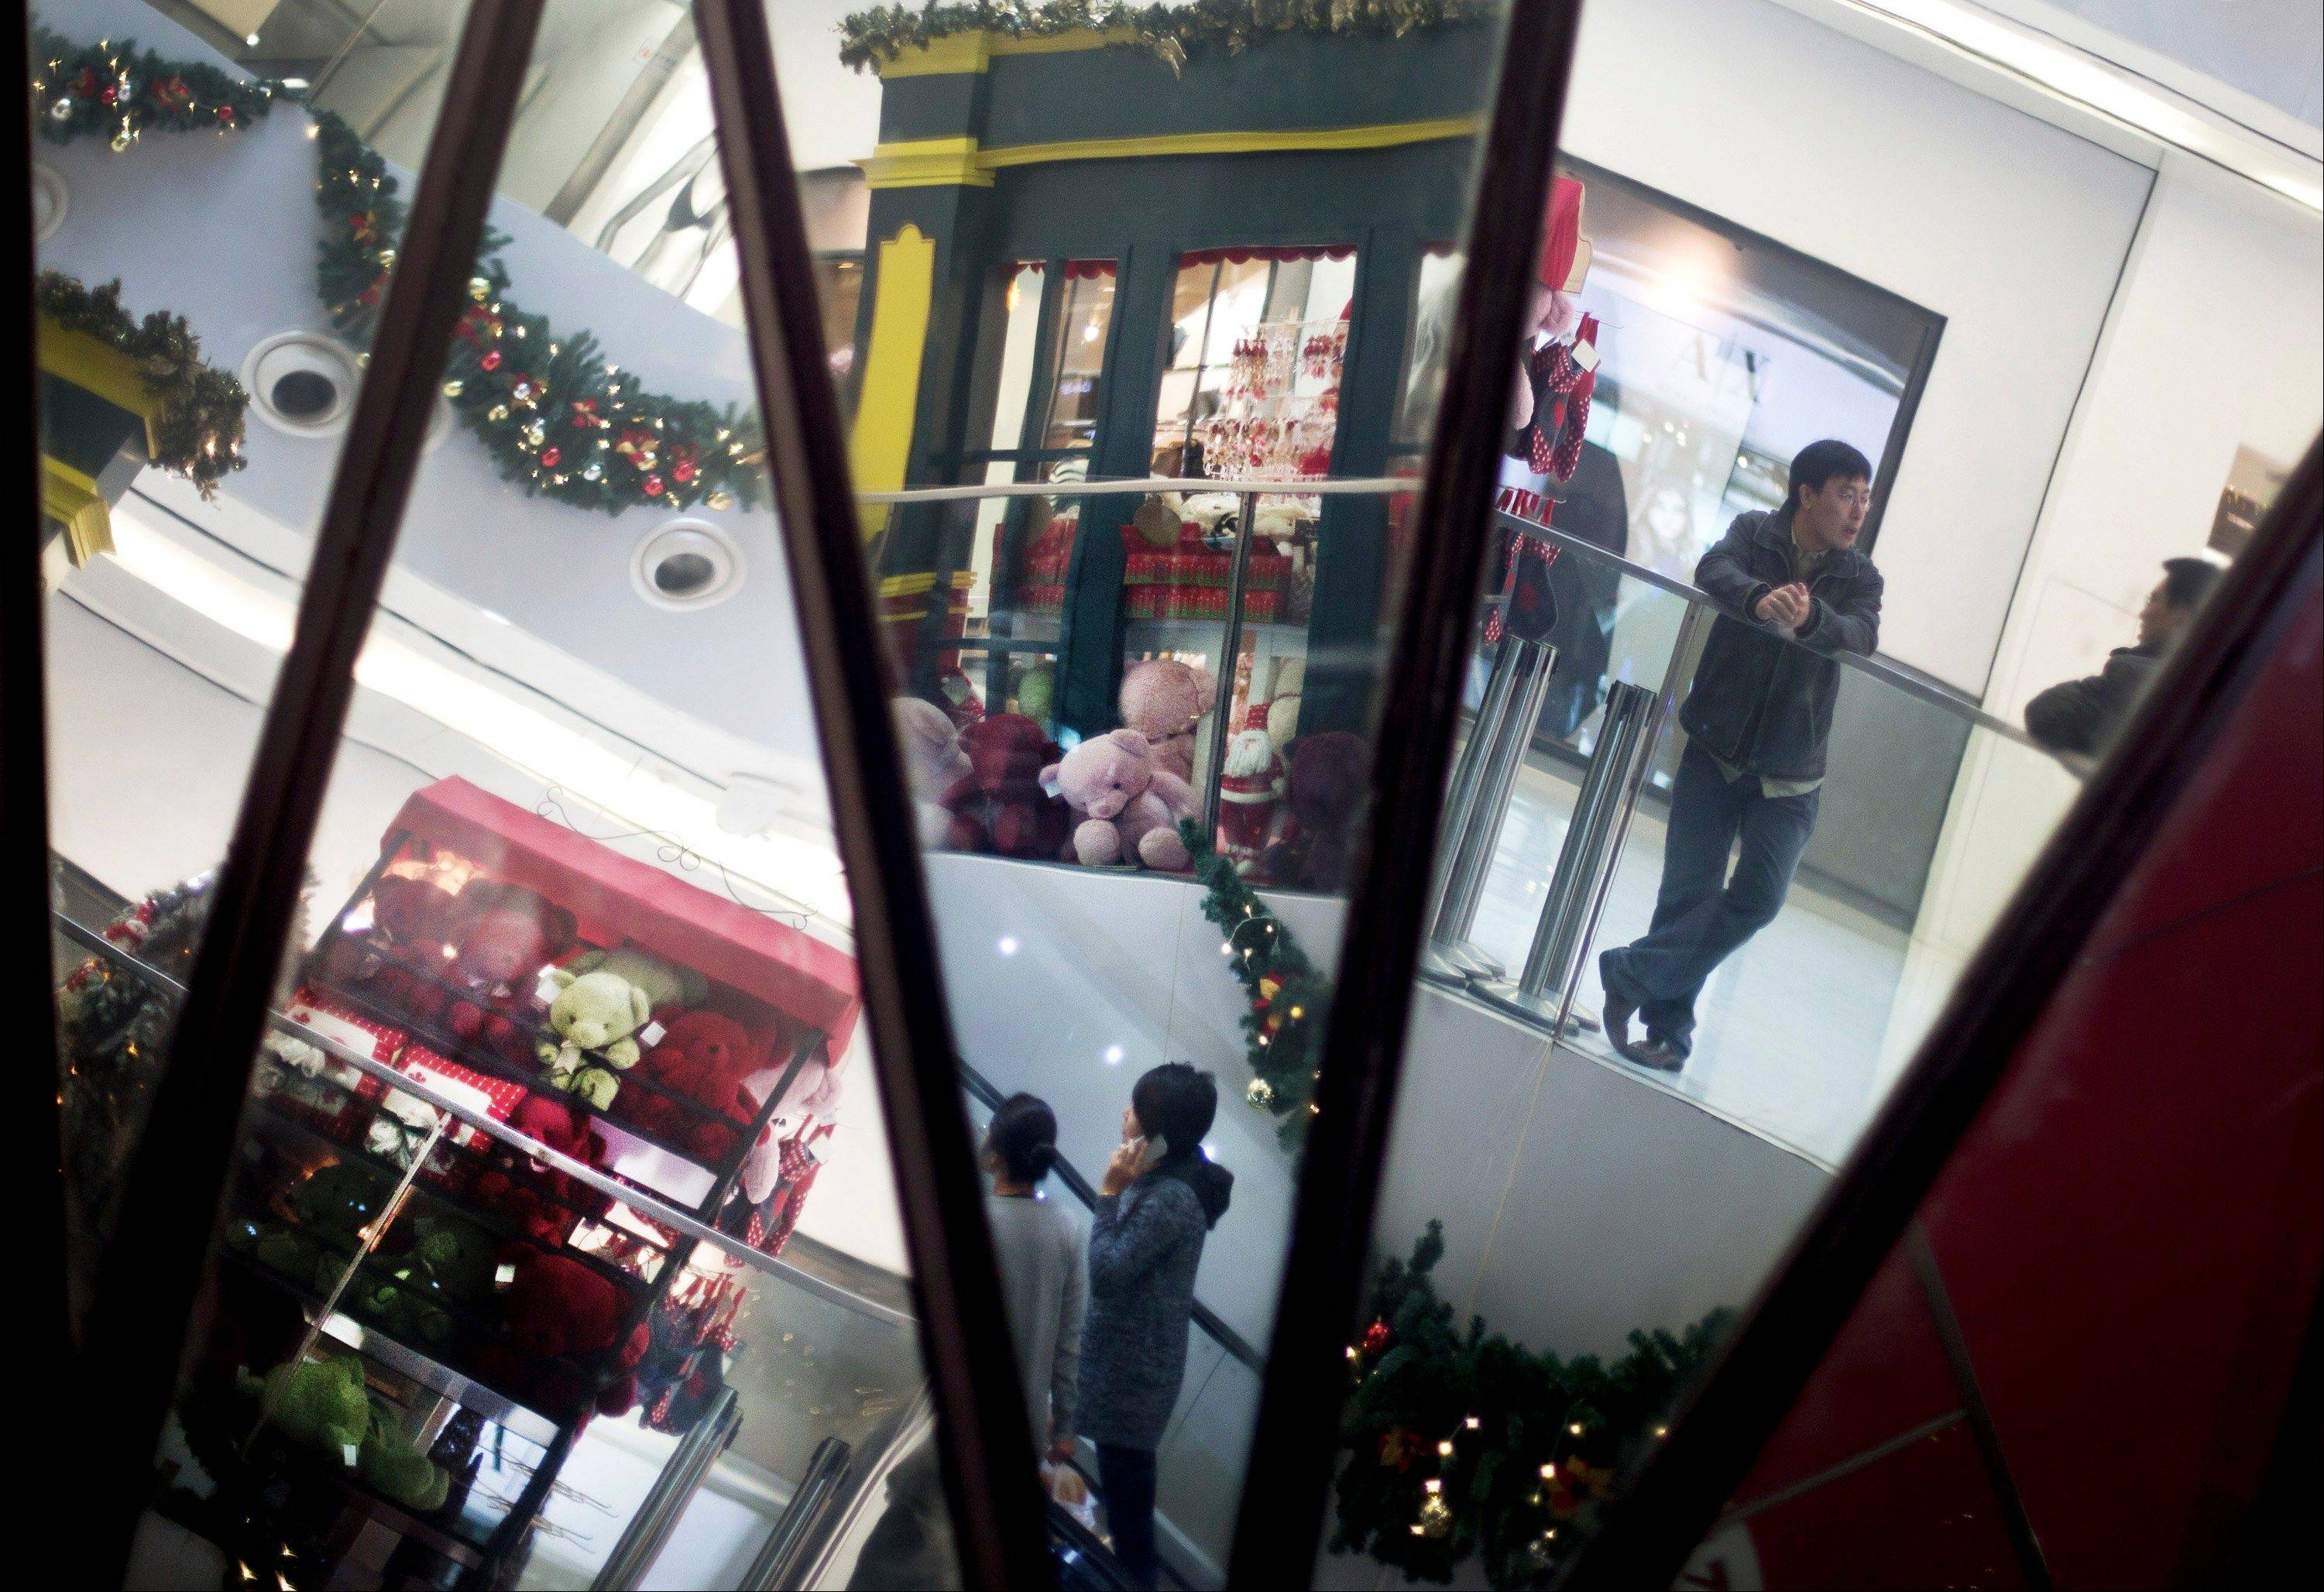 Chinese shoppers and Christmas decorations are reflected in mirrors inside a shopping mall Monday in Beijing. China's trade weakened sharply in November, adding to challenges for the world's second-largest economy as a gradual recovery takes shape. Export growth plunged to 2.9 percent over a year earlier from the previous month's 11.6 percent.